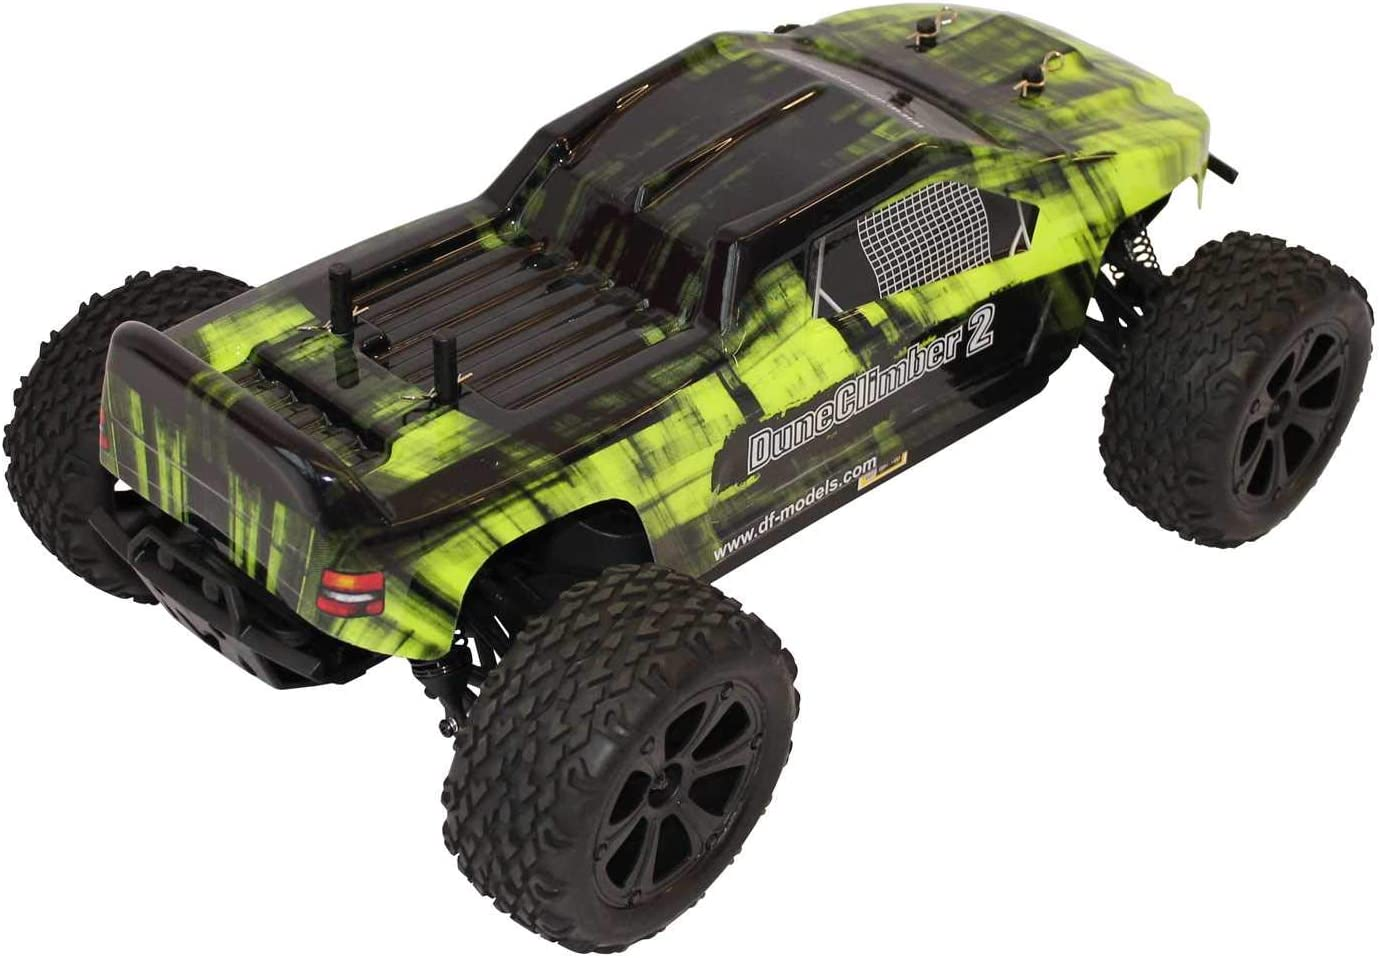 Brushed DF Models 3062 RTR Dune Climber 2